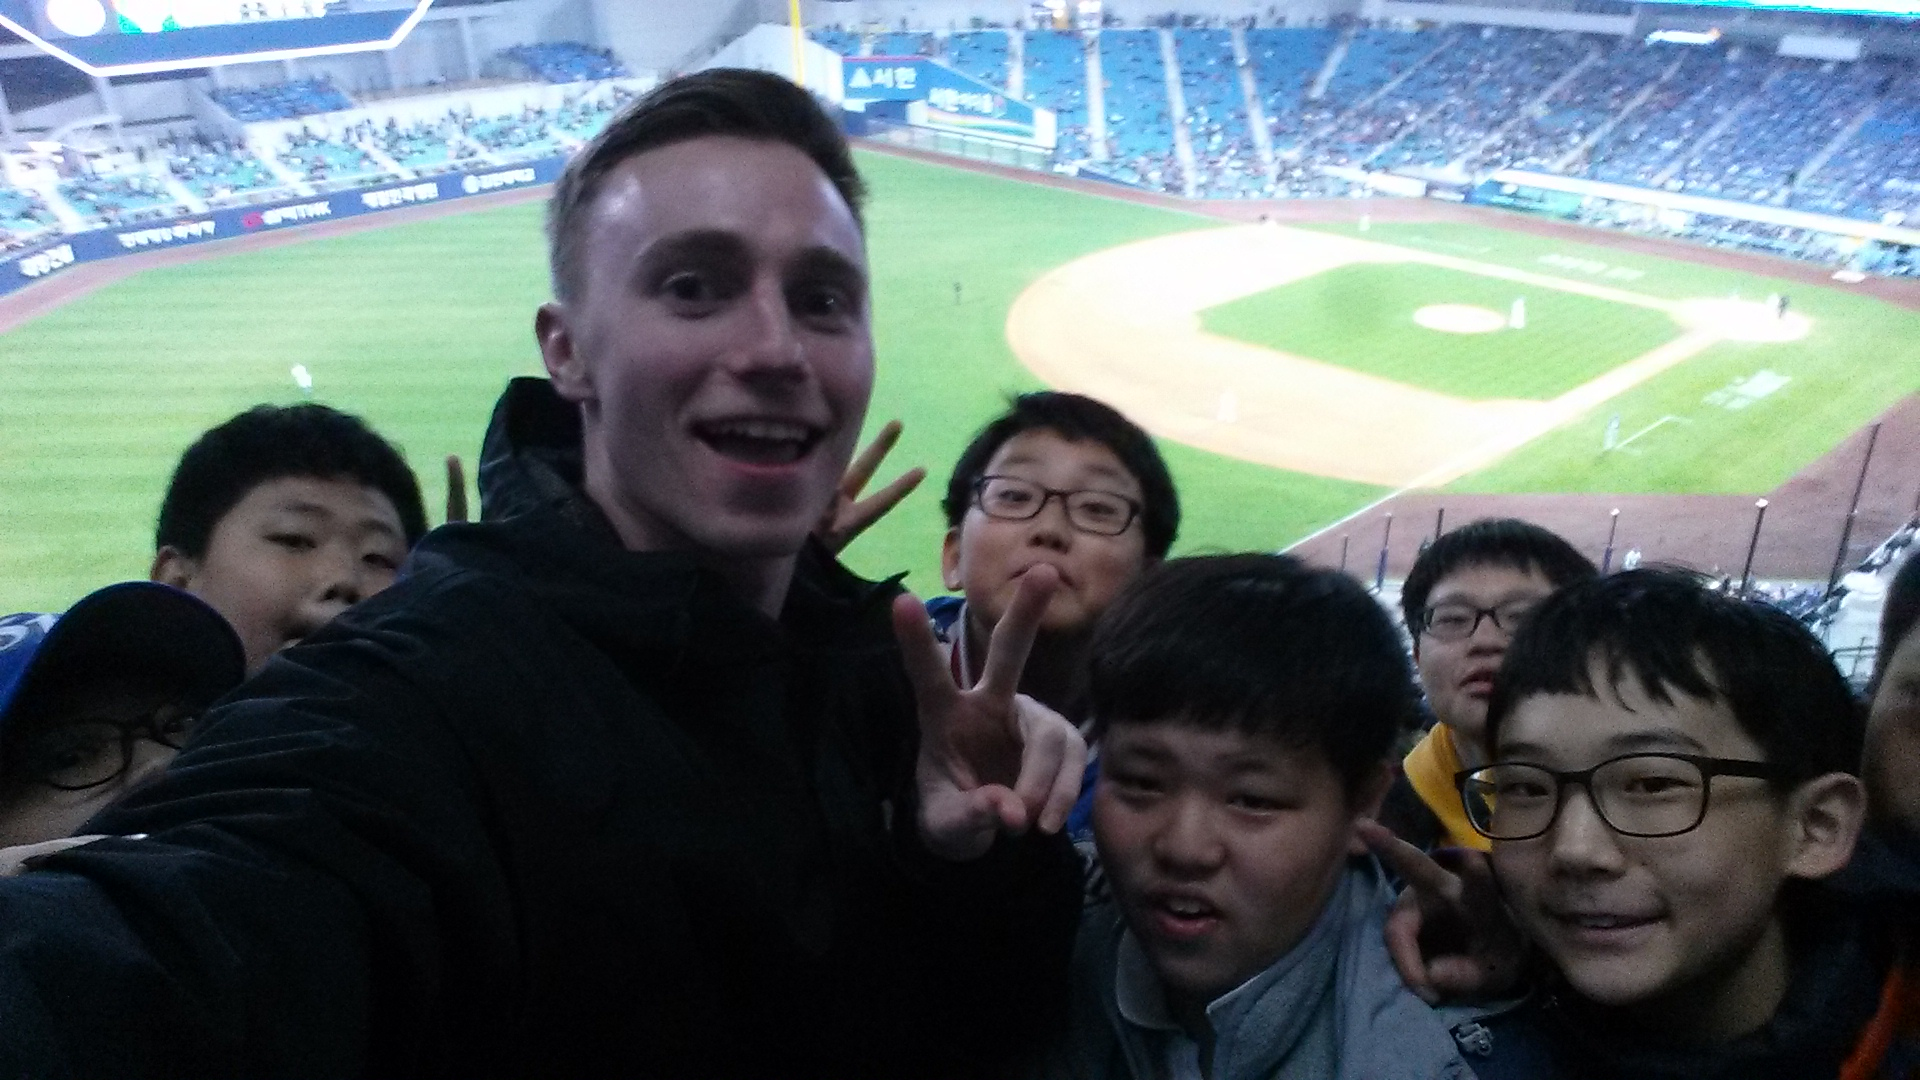 My students and I at a Korean baseball game